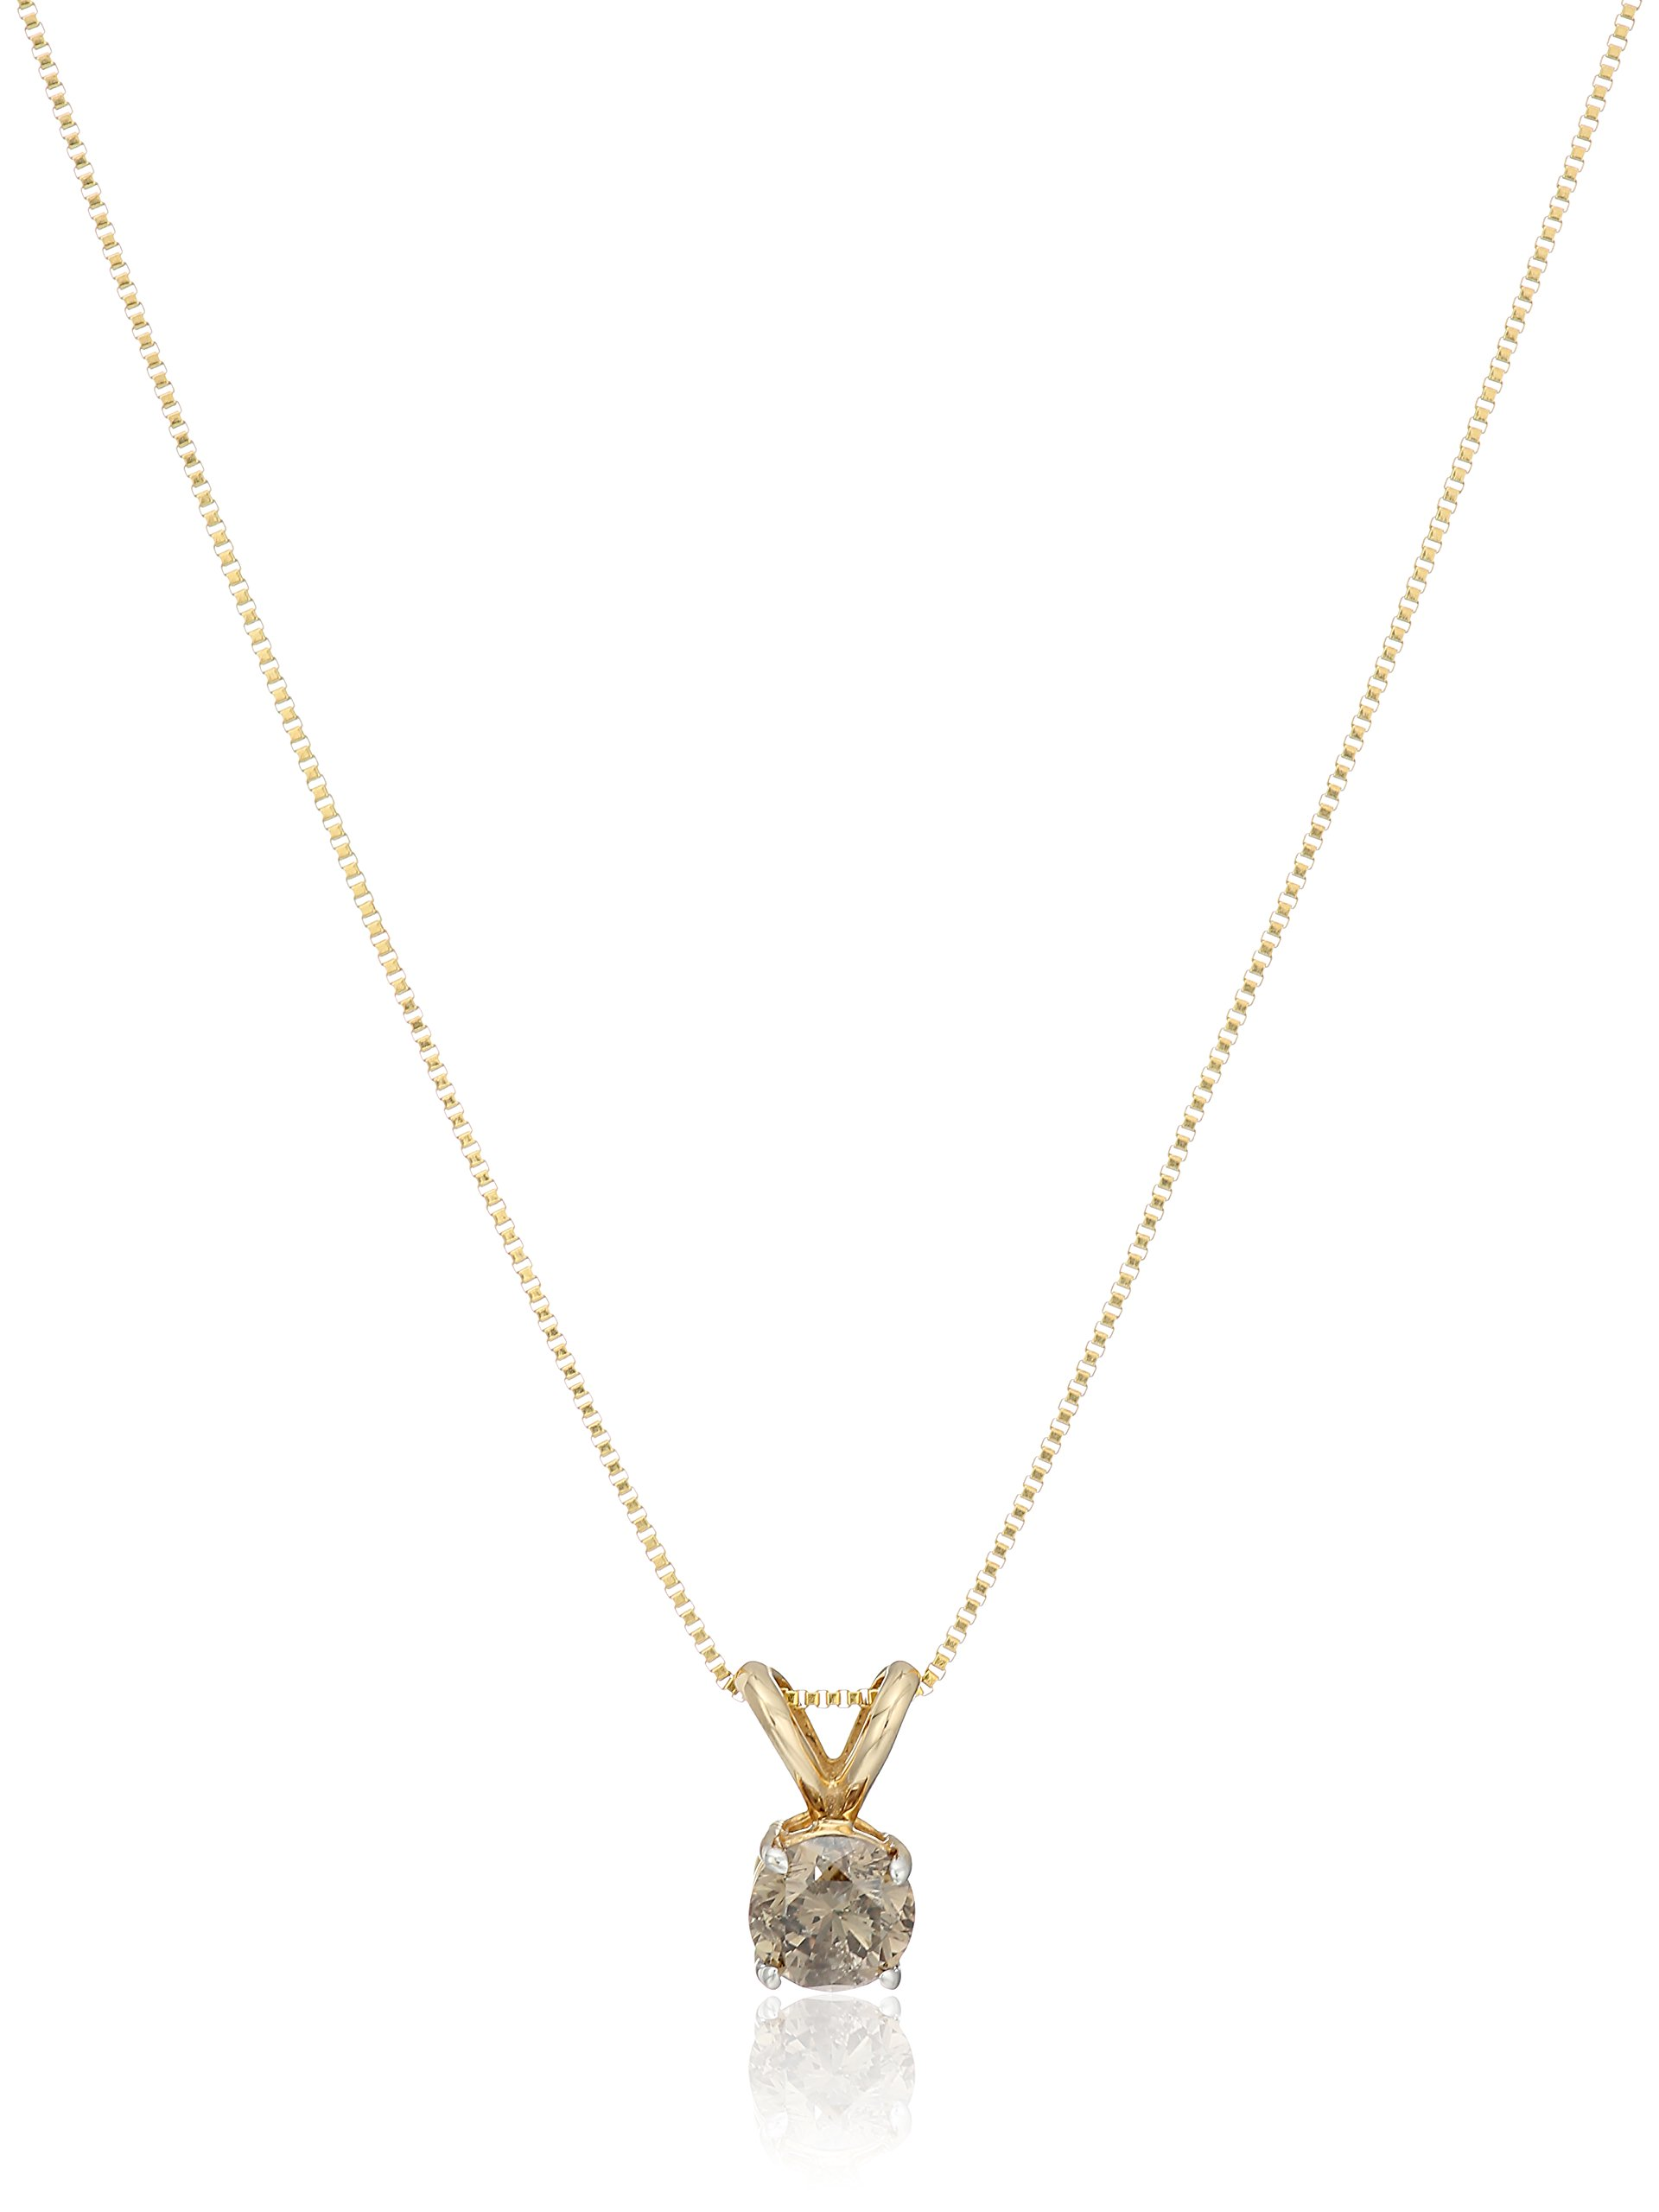 , 18''14k Yellow Gold Champagne Diamond Solitaire Pendant Necklace (1/2cttw, I2-I3 Clarity), 18''